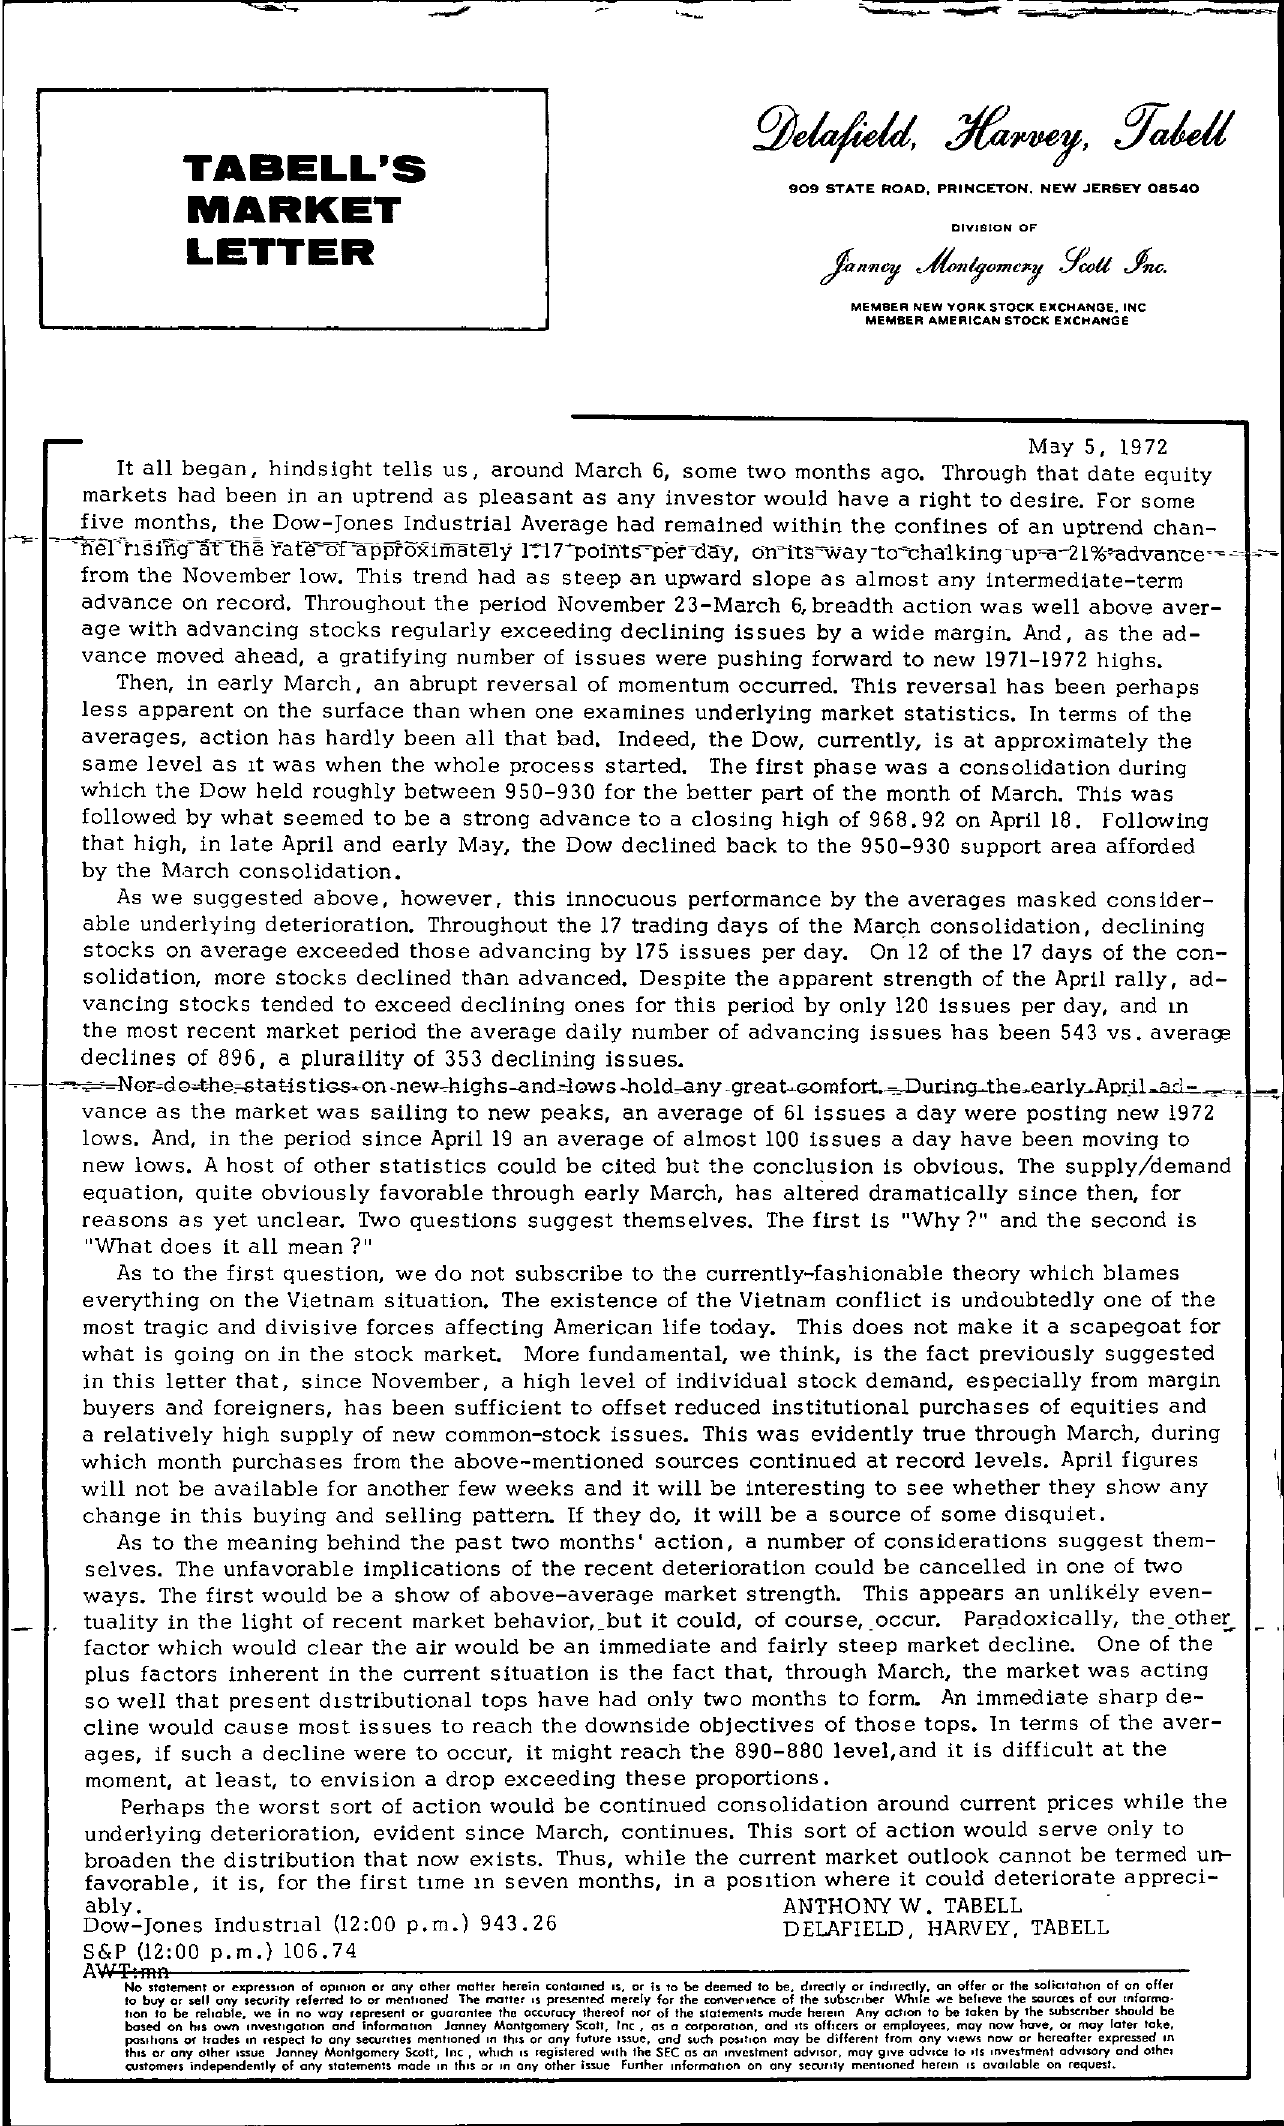 Tabell's Market Letter - May 05, 1972